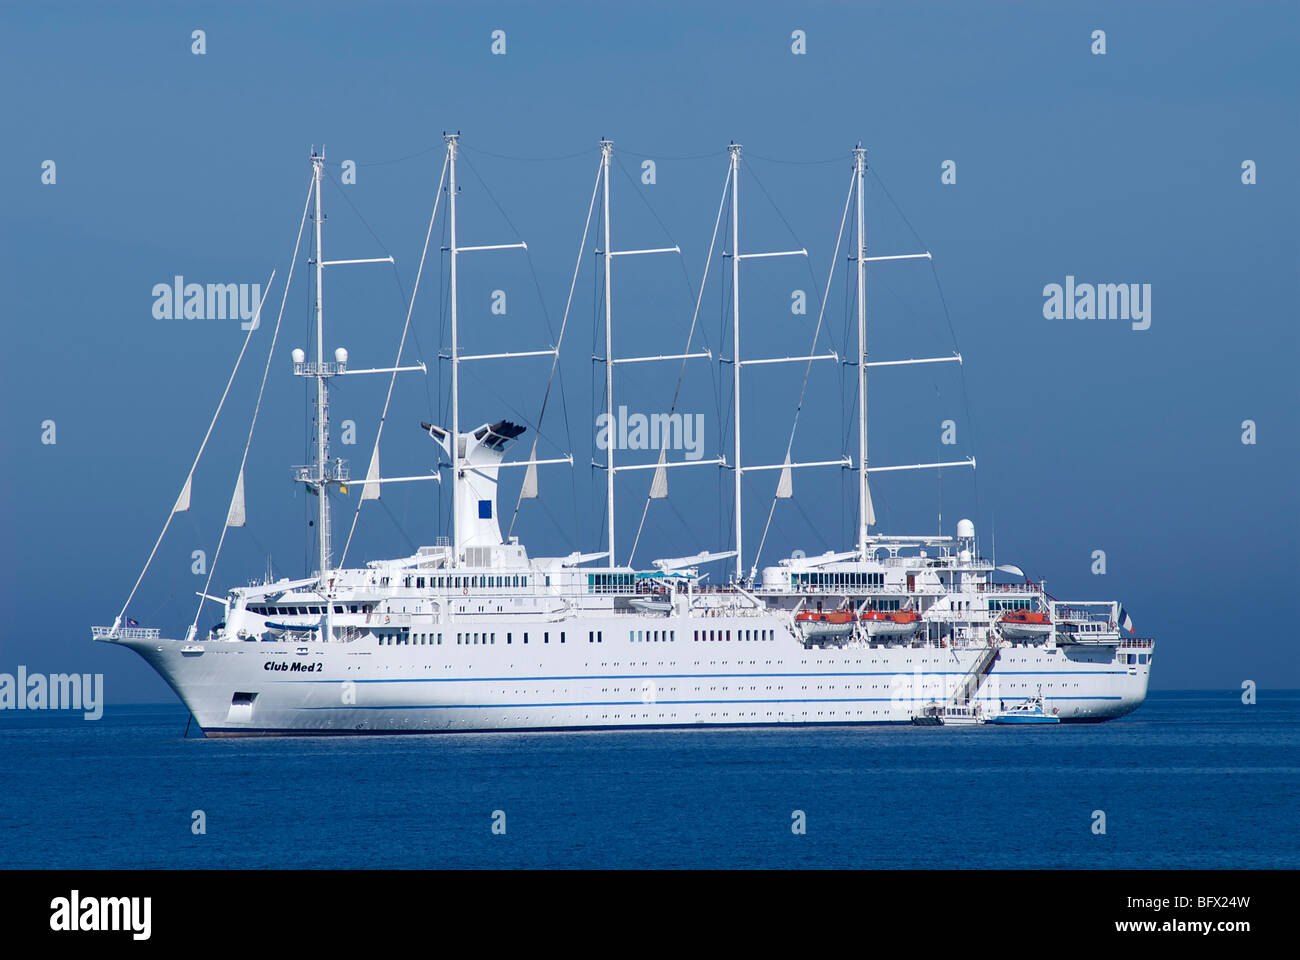 Club Med 2 ship anchored - Stock Image